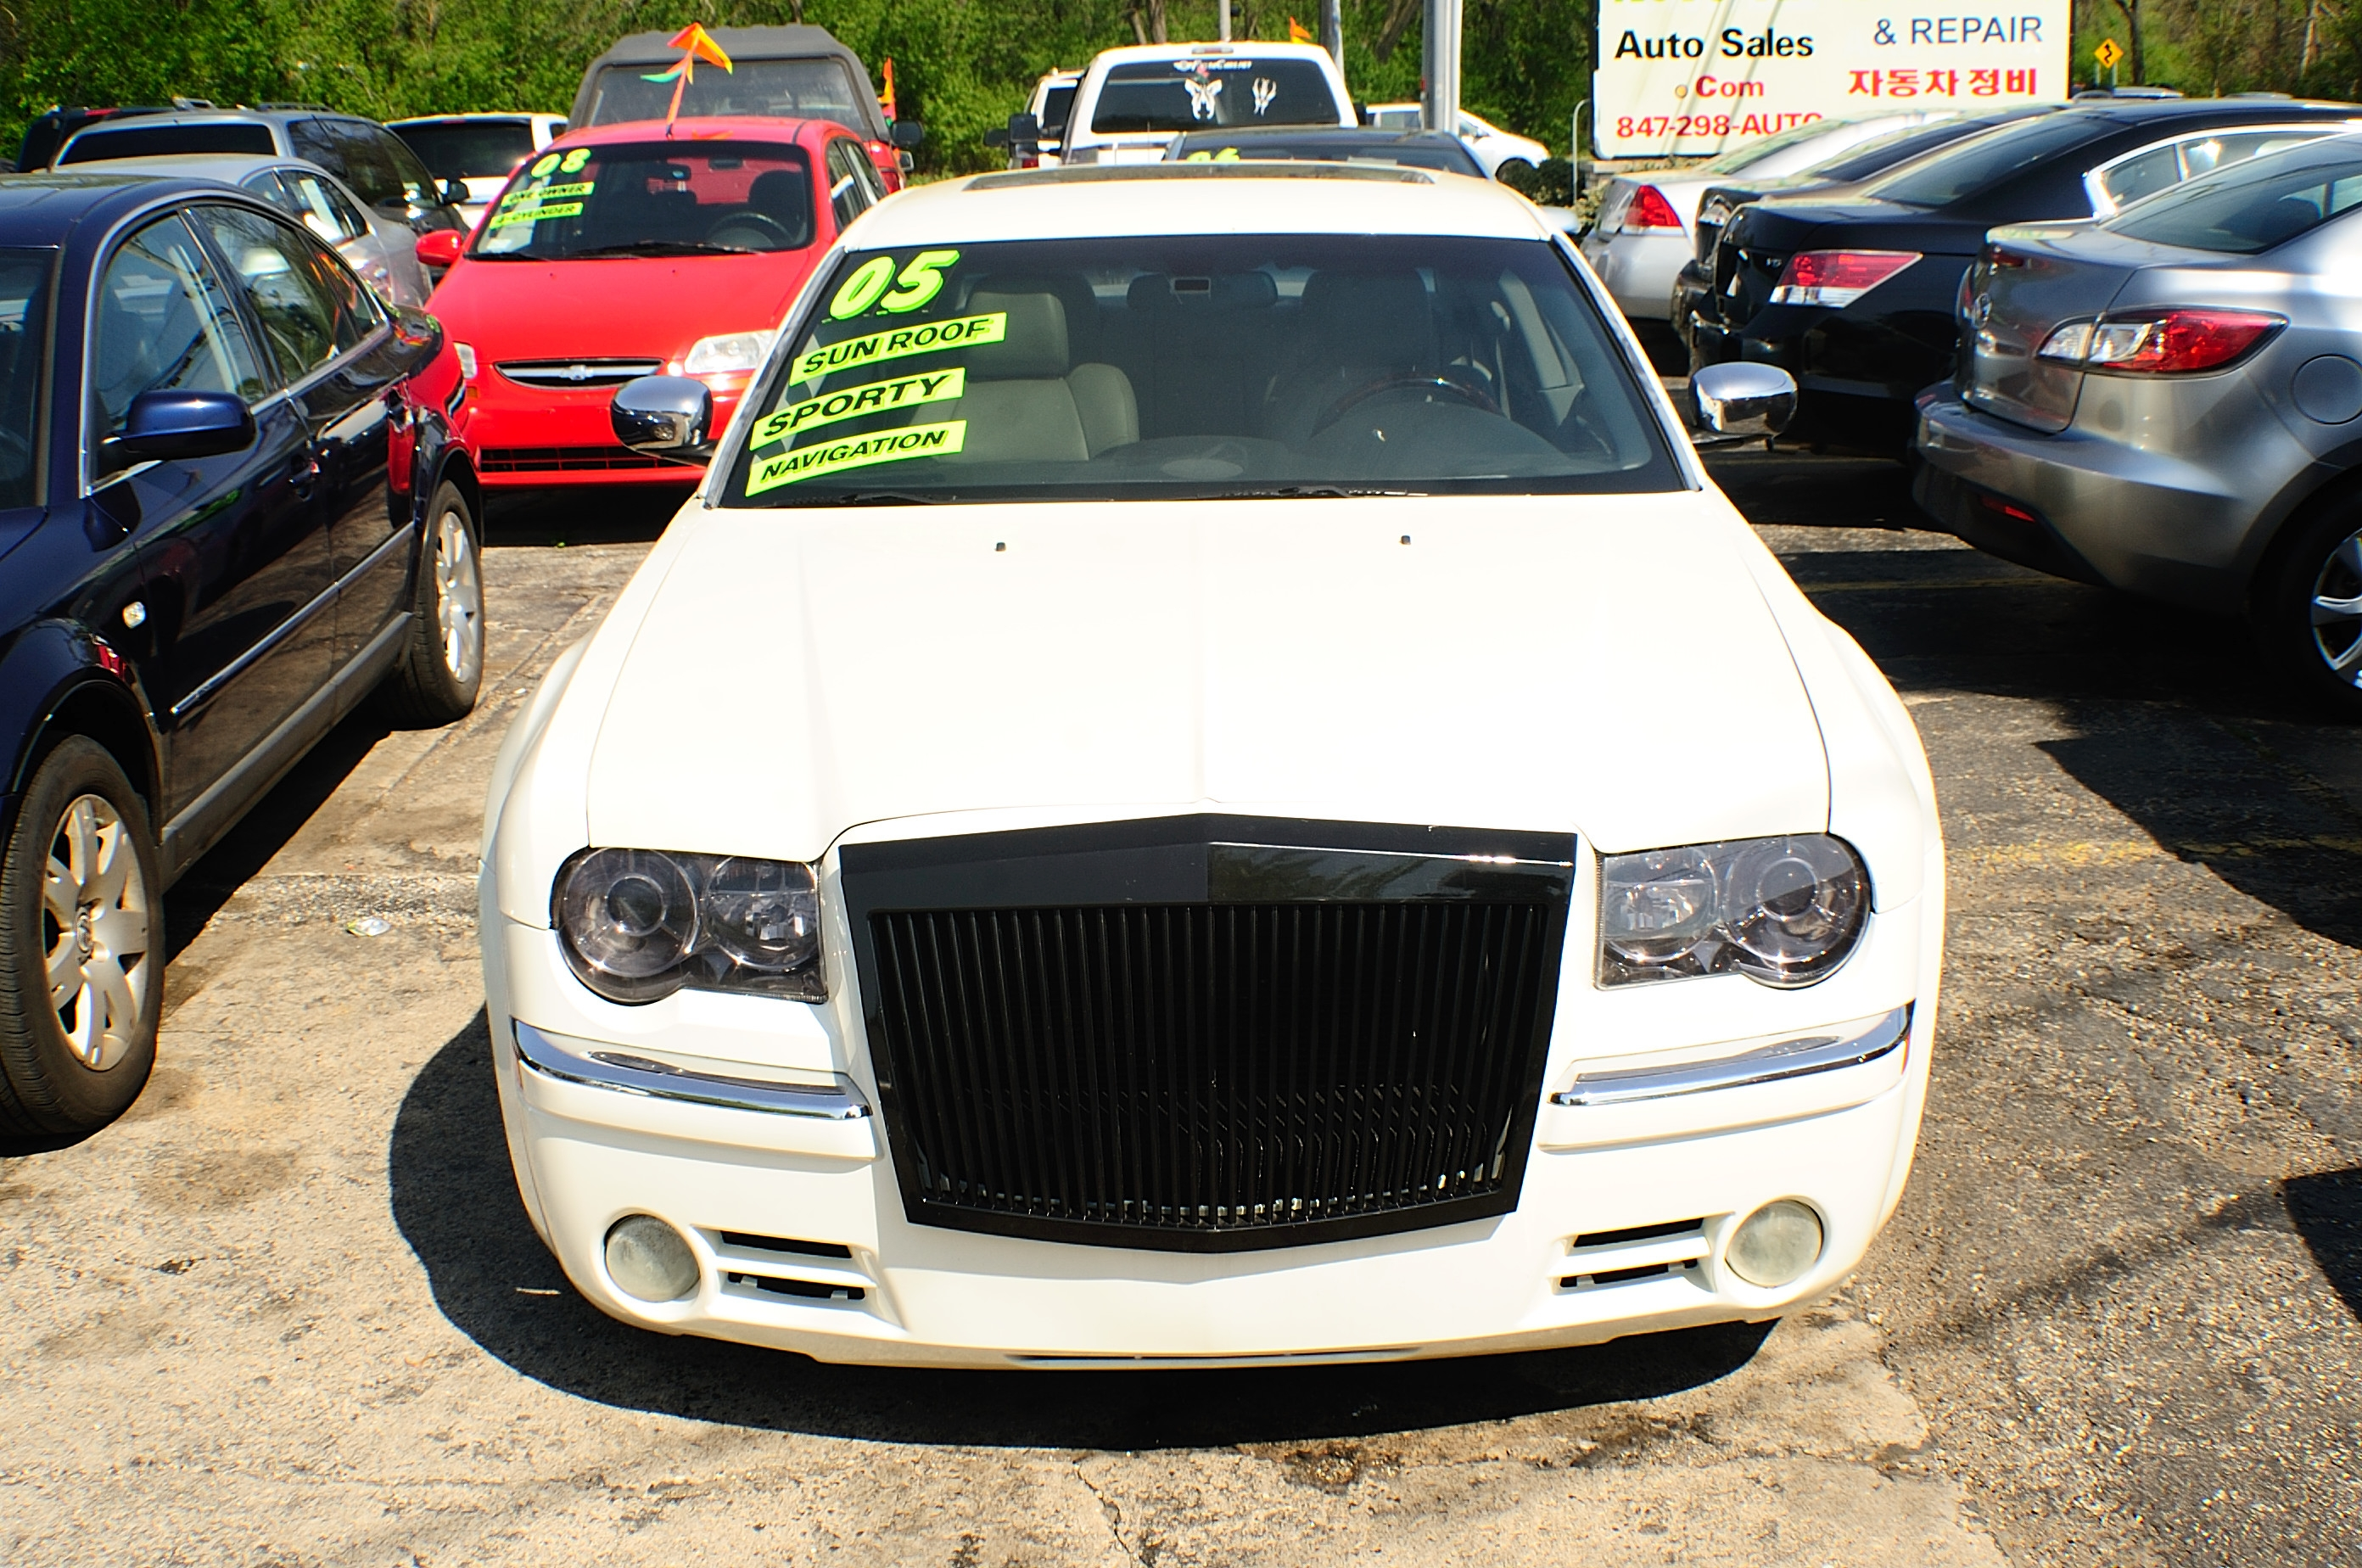 2005 Chrysler 300 White Navigation Used Sedan car sale Buffalo Grove Carol Stream Carpentersville Cicero